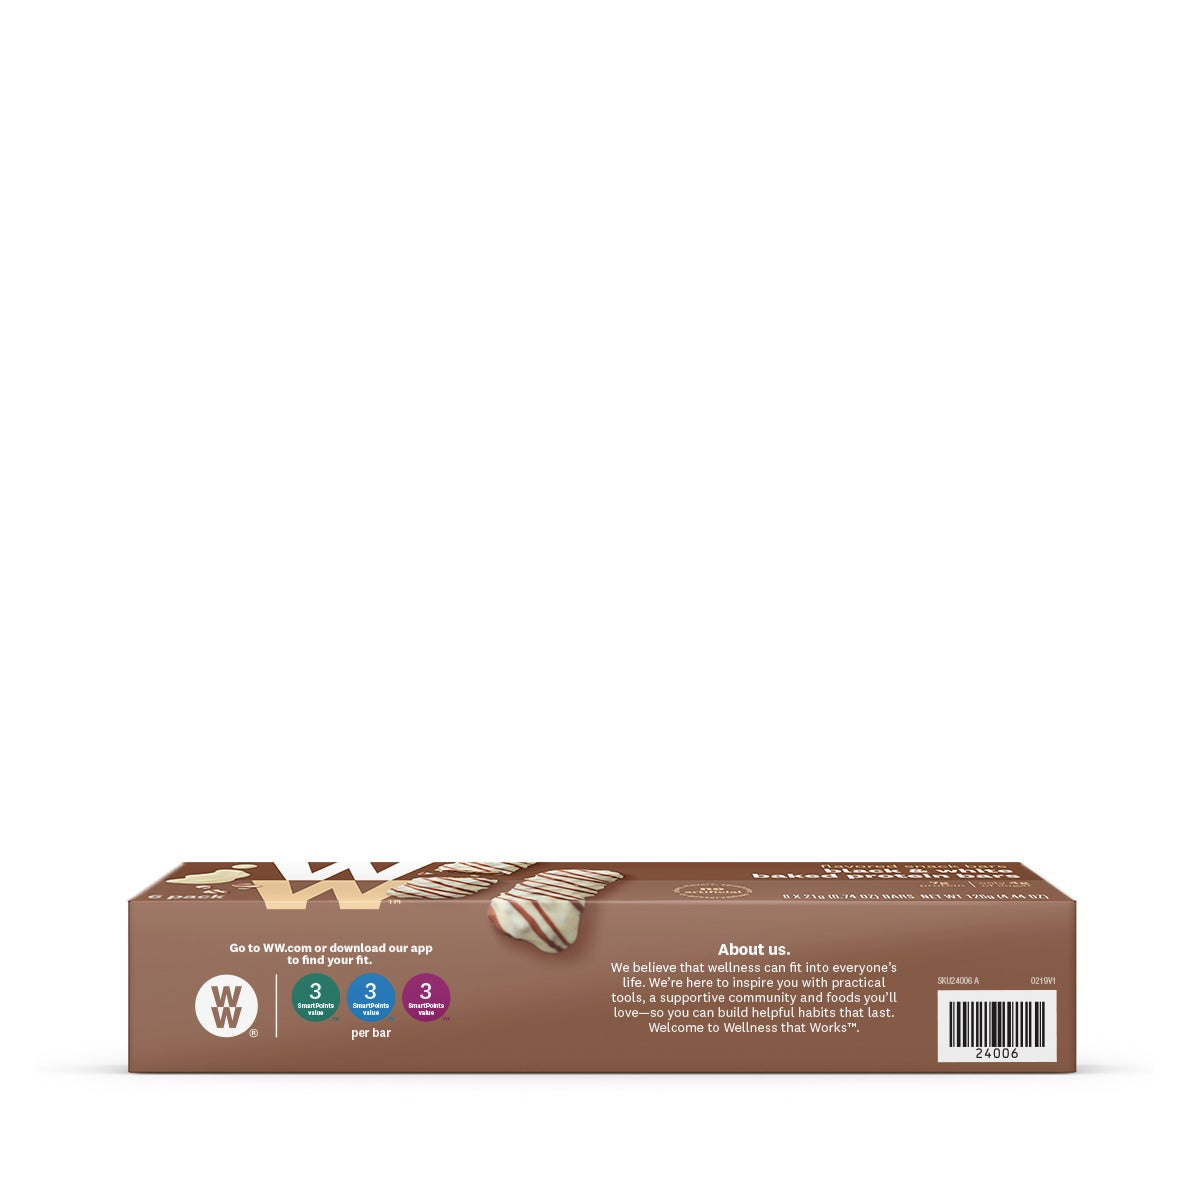 Black and White Baked Protein Bar - side of box